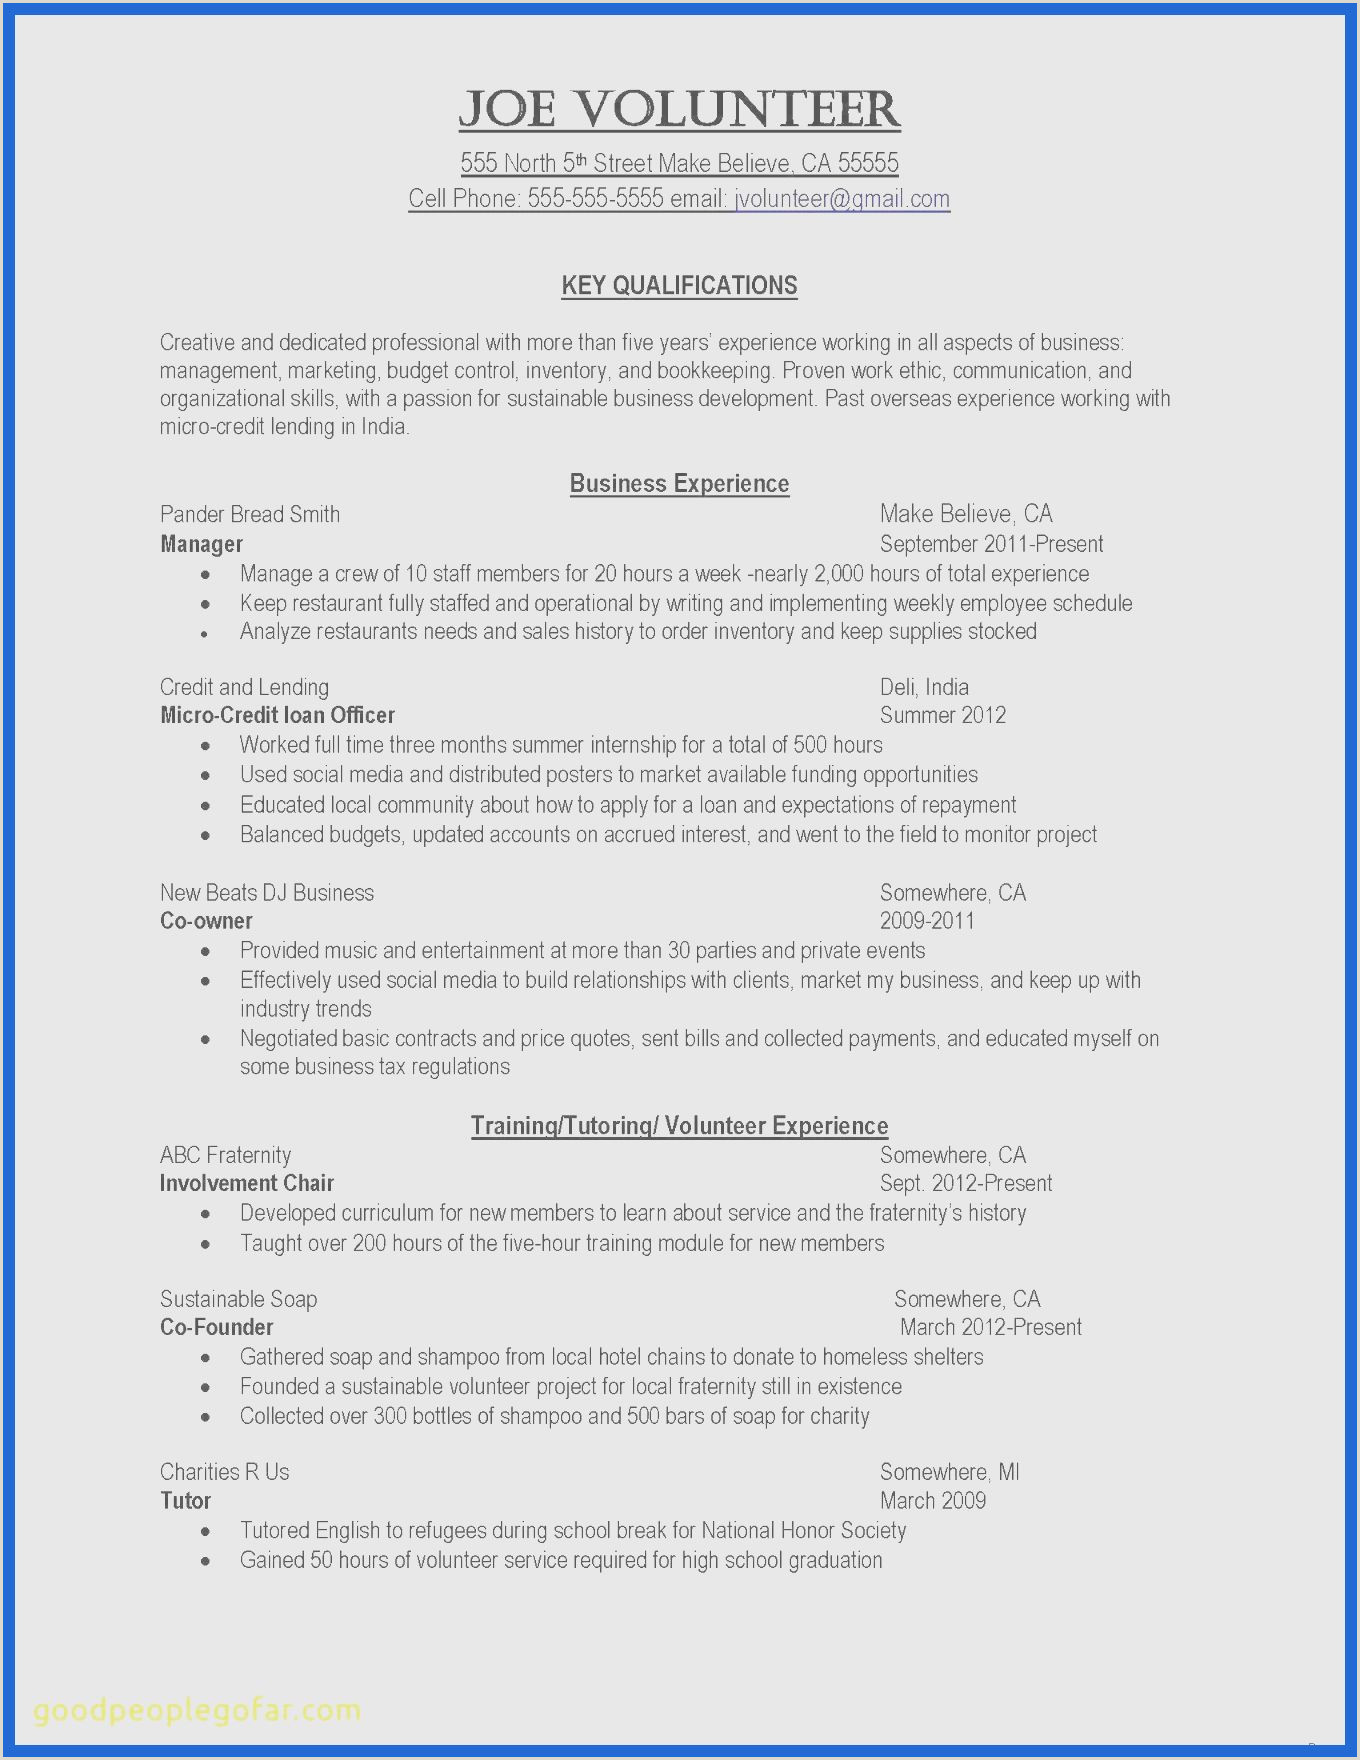 Branch Manager Job Description Volunteer Service form Template